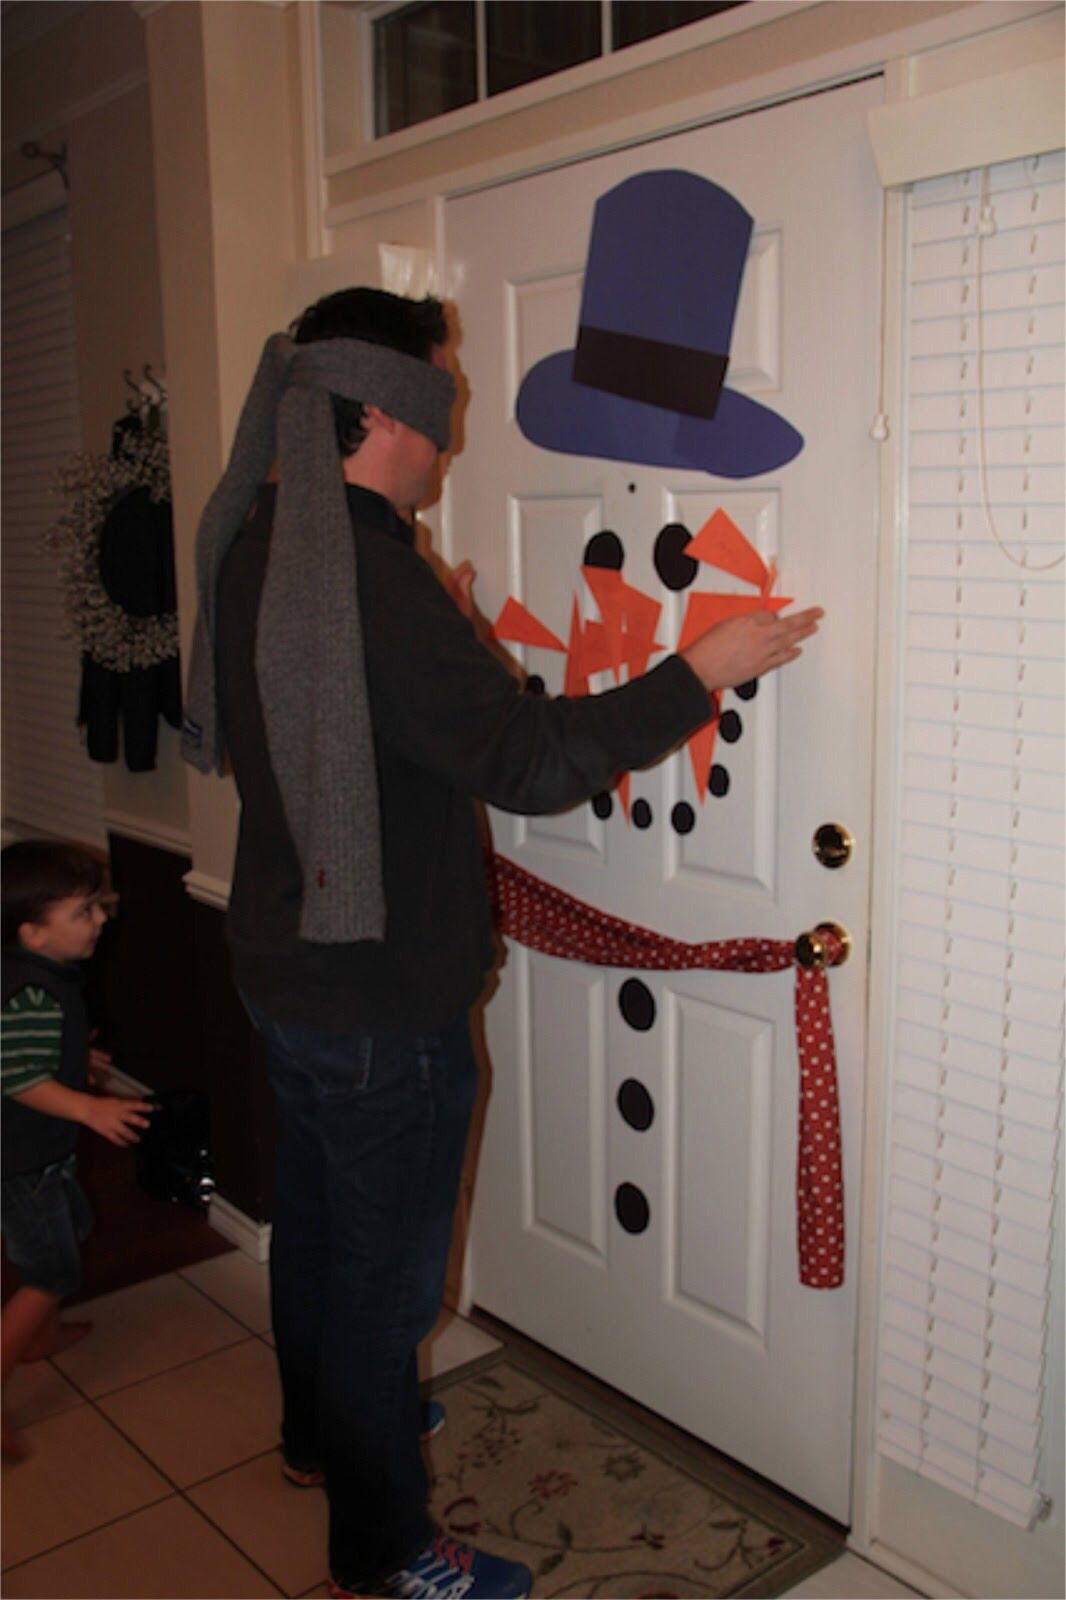 Pin The Nose On A Snowman Homemade Christmas Gifts Pinterest Troubleshooting Circuit Breaker Problems Thriftyfun